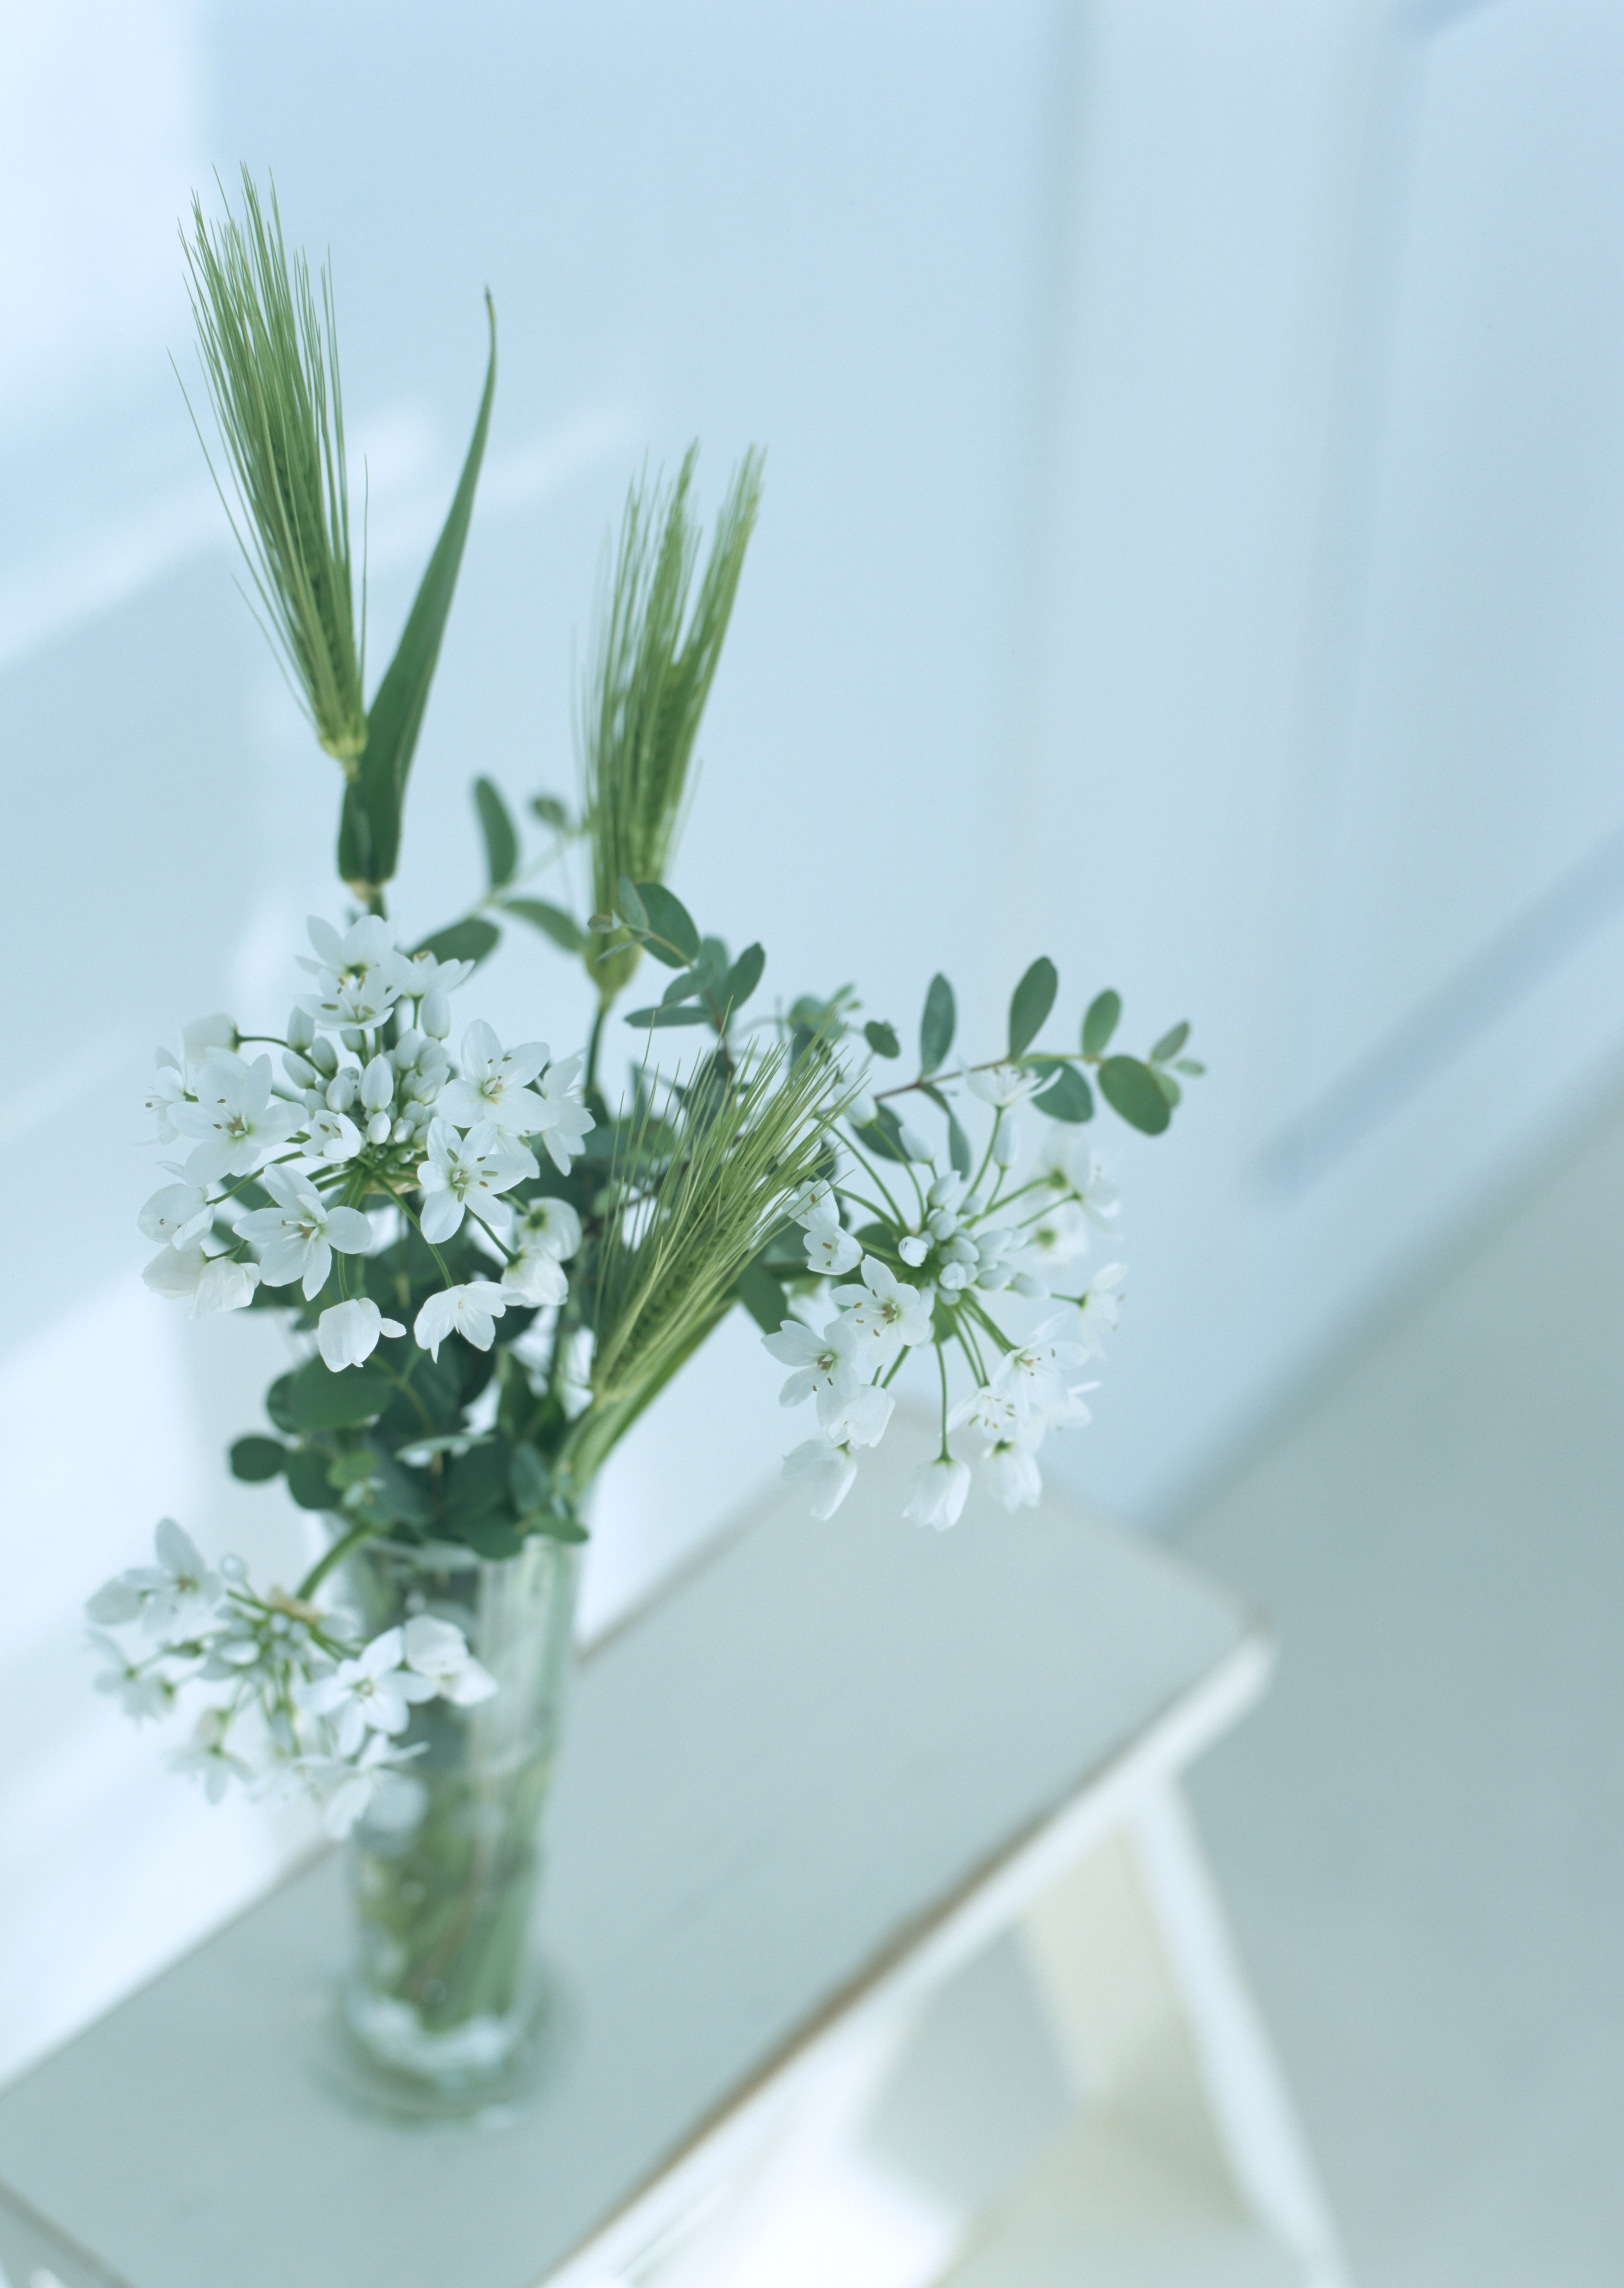 Flower arranged in a glass bowl on stool